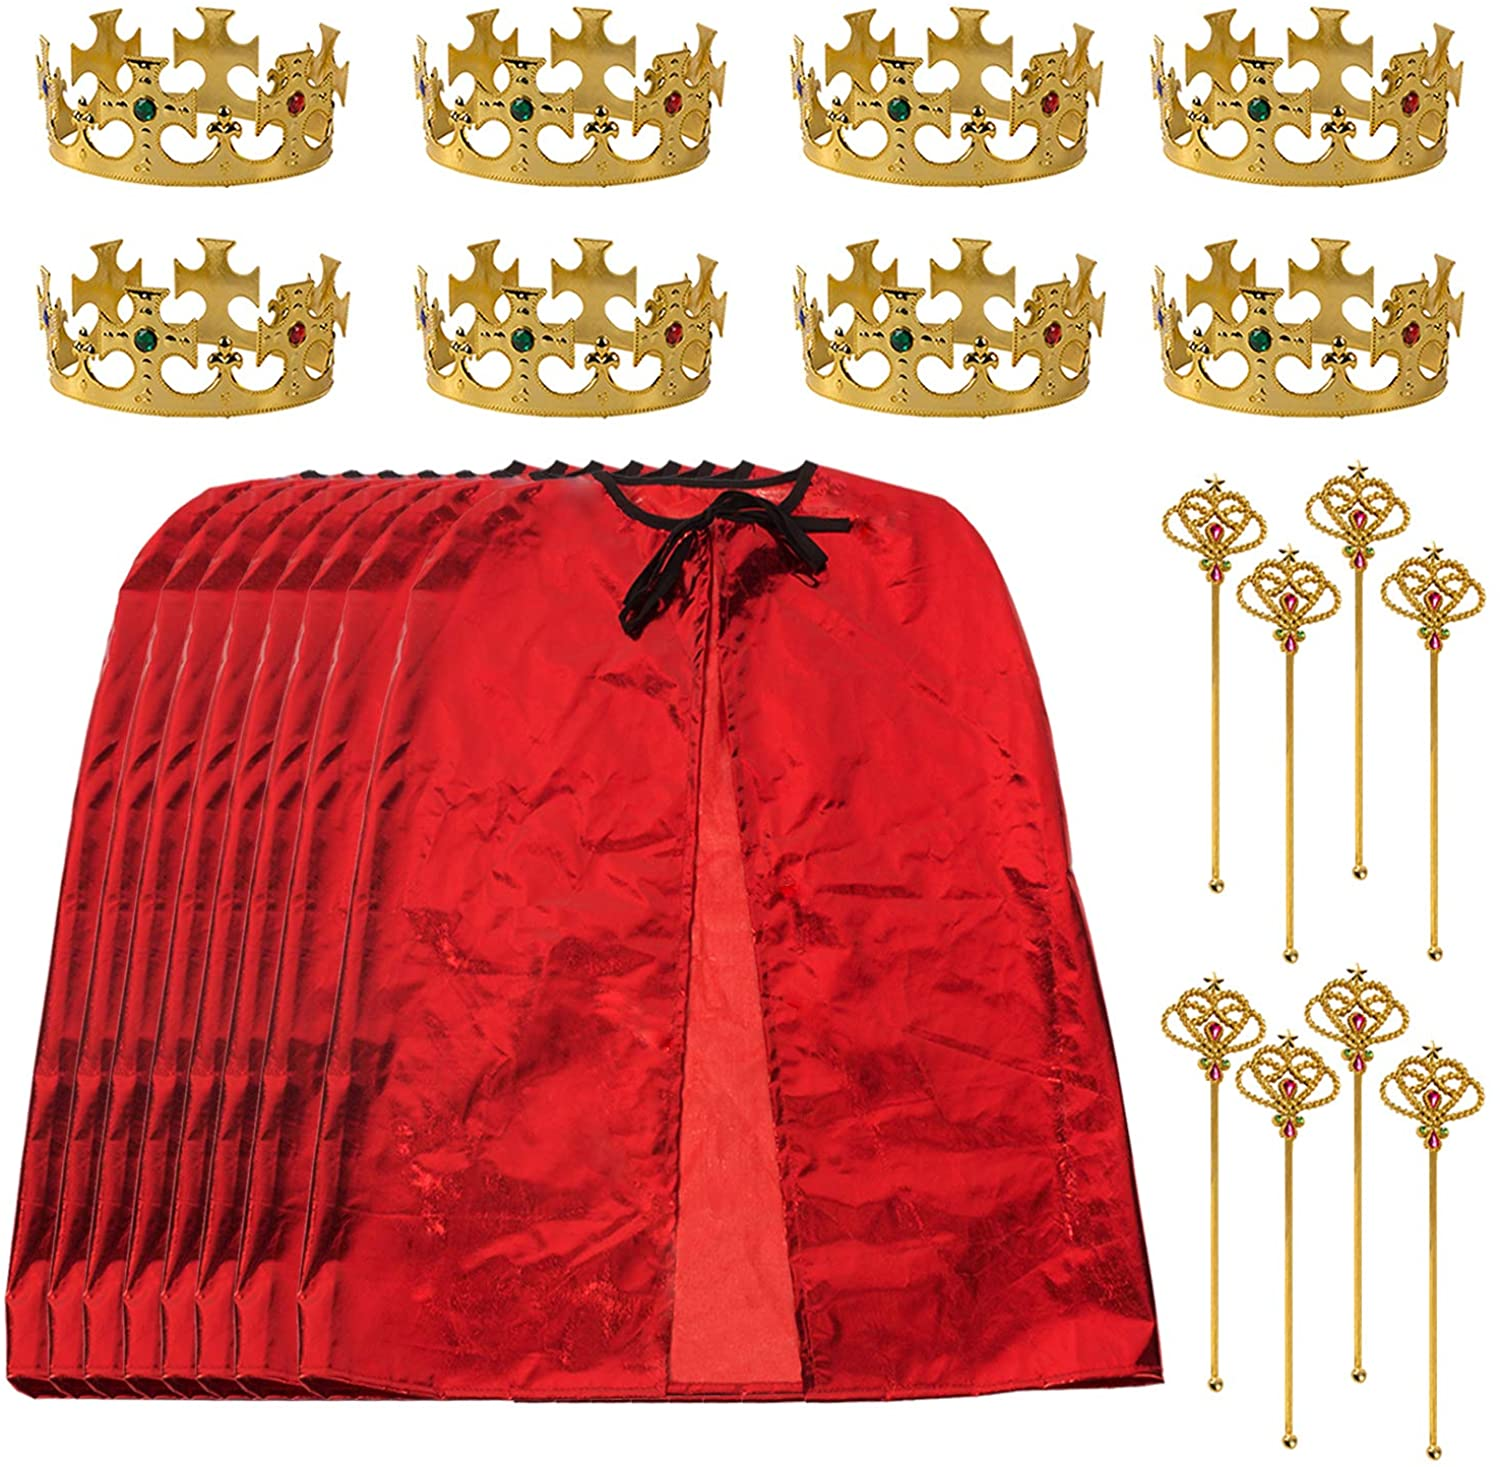 Tigerdoe King Party Set for Children- 24 pc Set- Royal King Costume Set for Kids- Dress Up for Pretend Play- Child Role Play- Costume Accessories Red and Gold